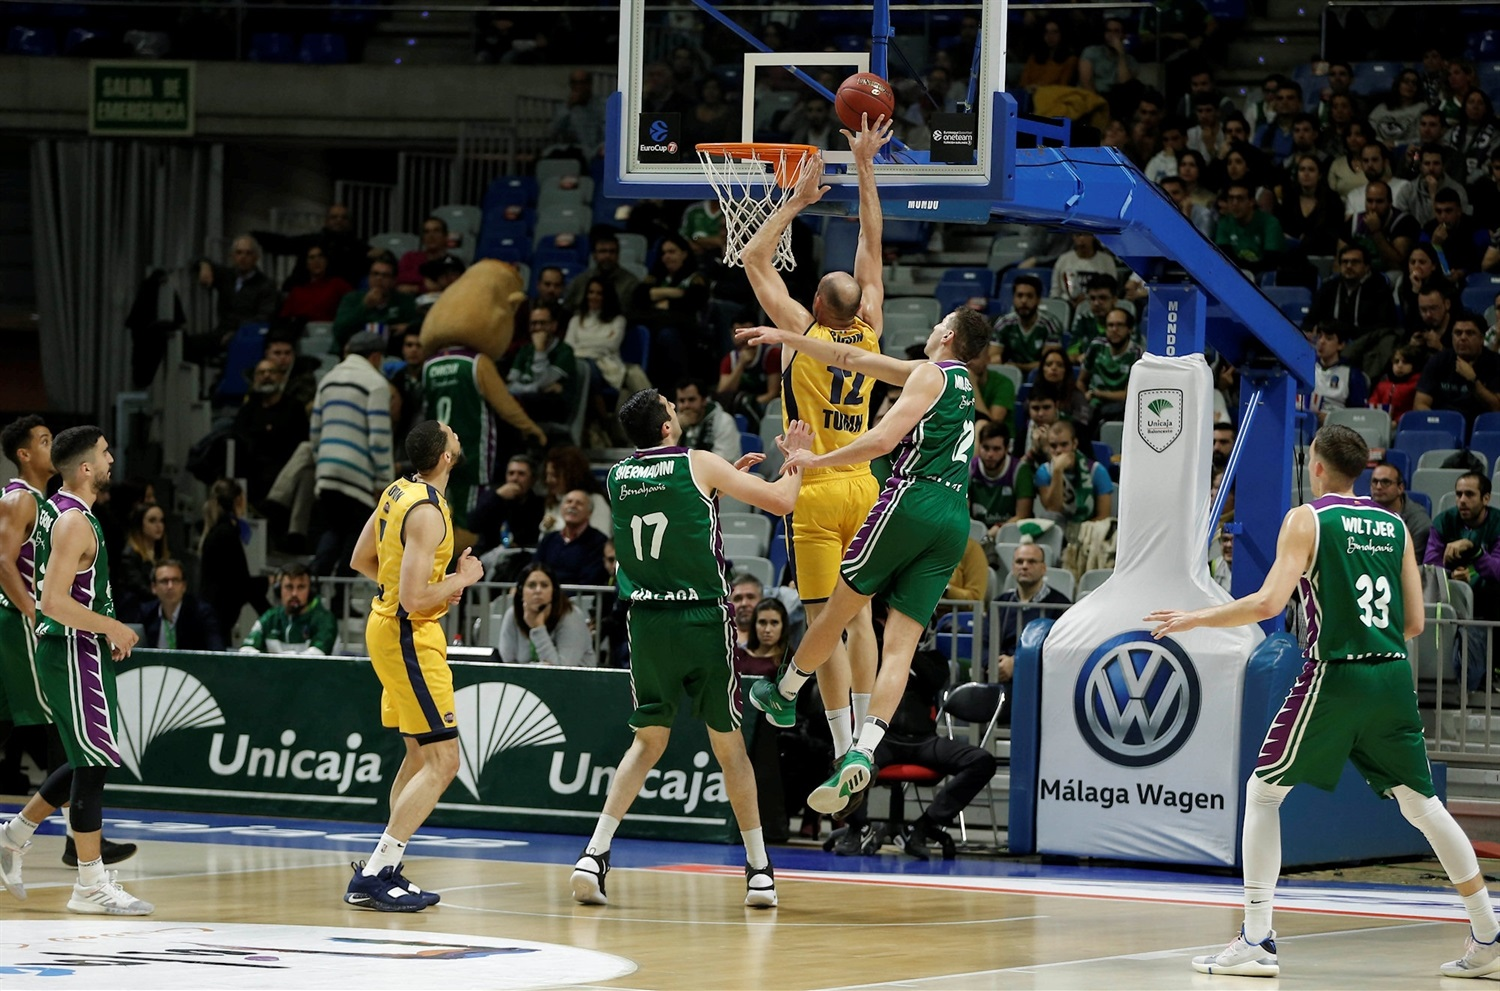 Marco Cusin - Fiat Turin (photo Unicaja) - EC18